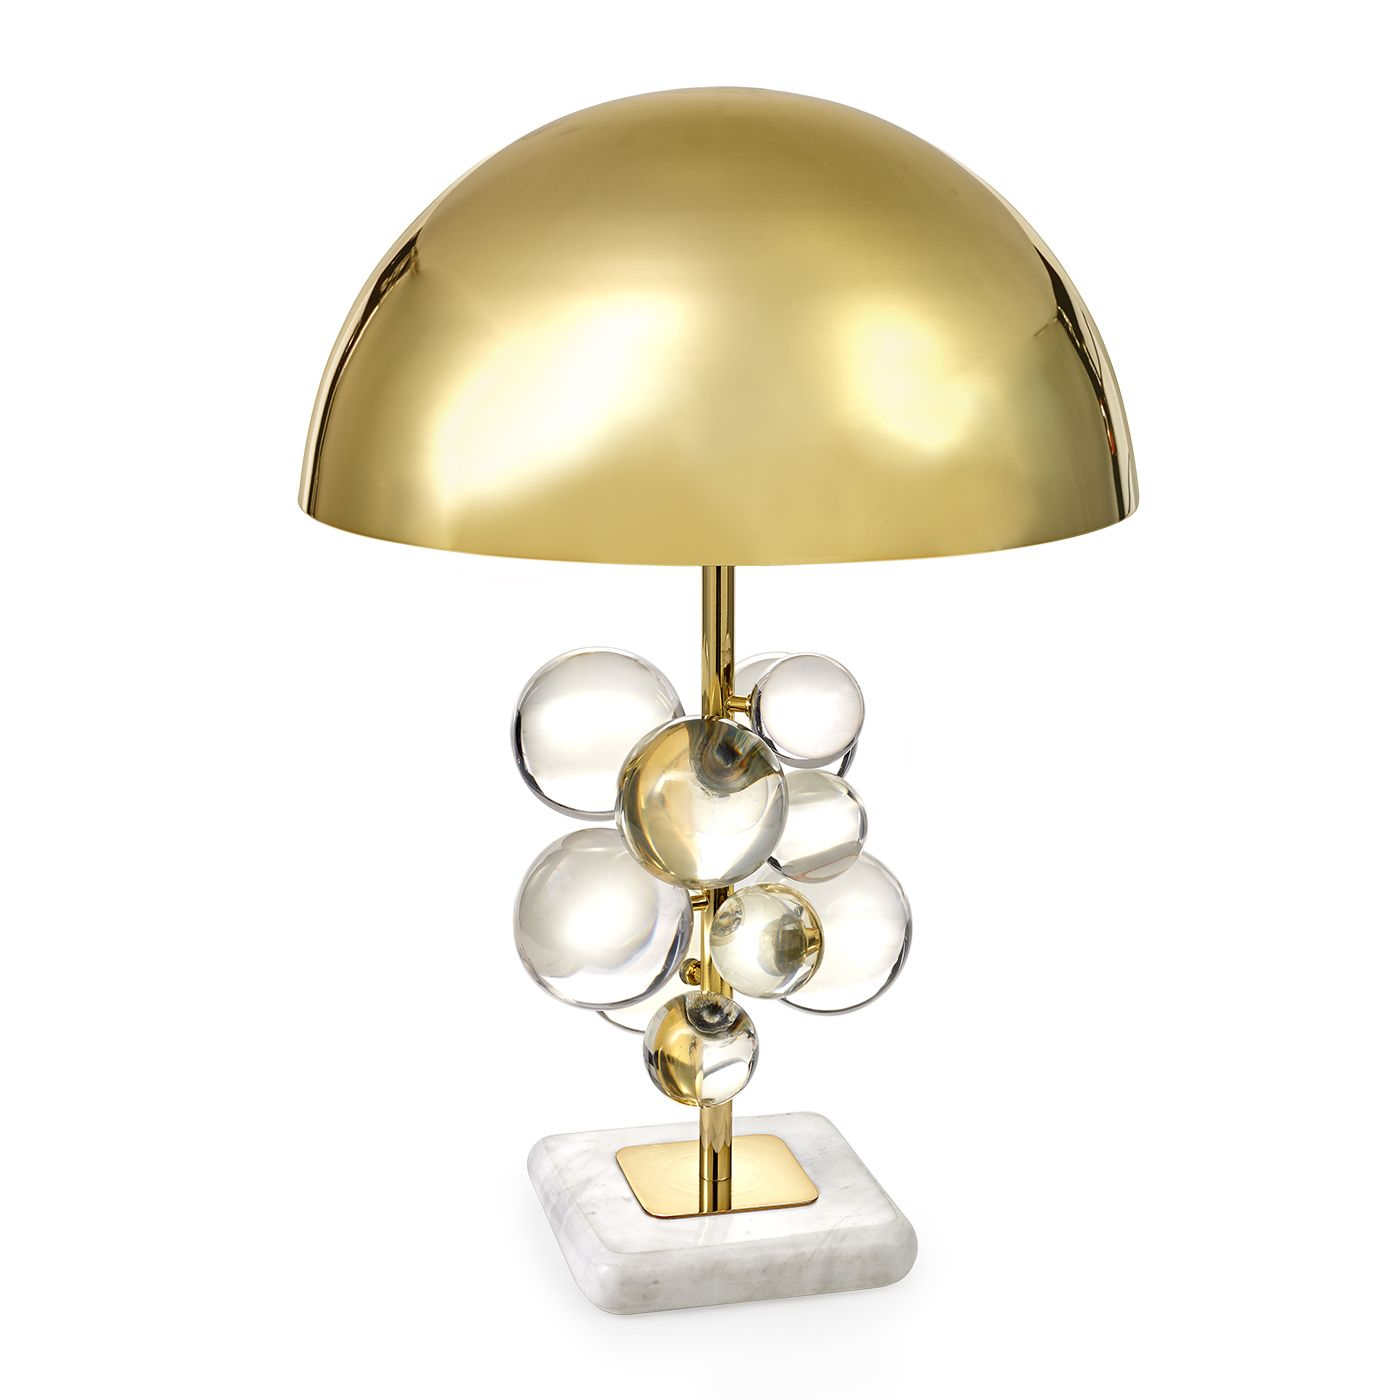 Globo Table Lamp Table Lamp Lucite Table Transitional Decor